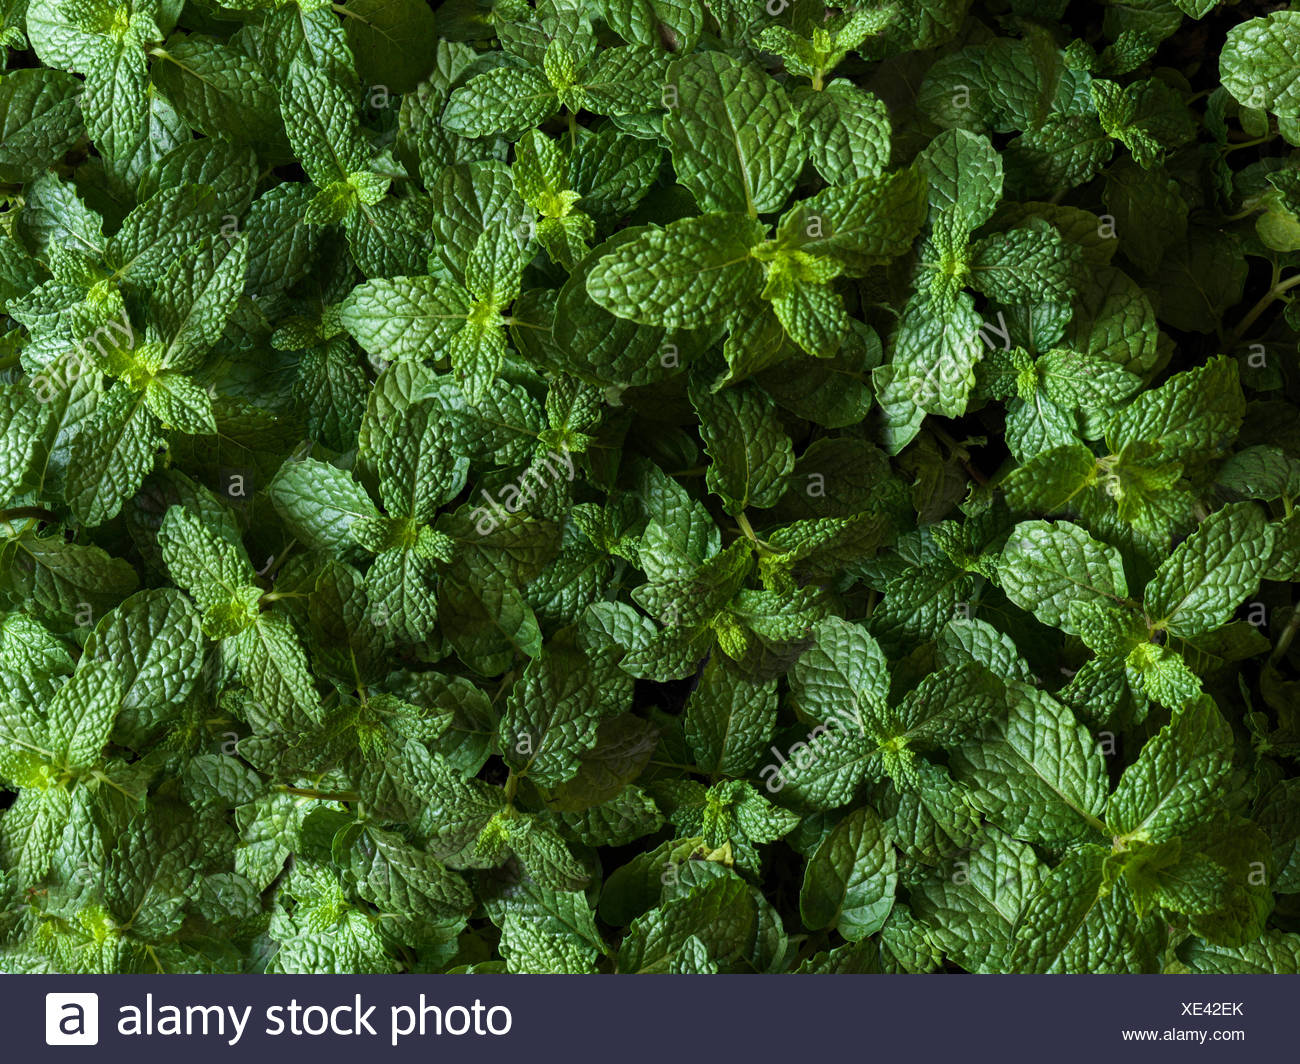 Full bleed shot of mint plants from above Stock Photo